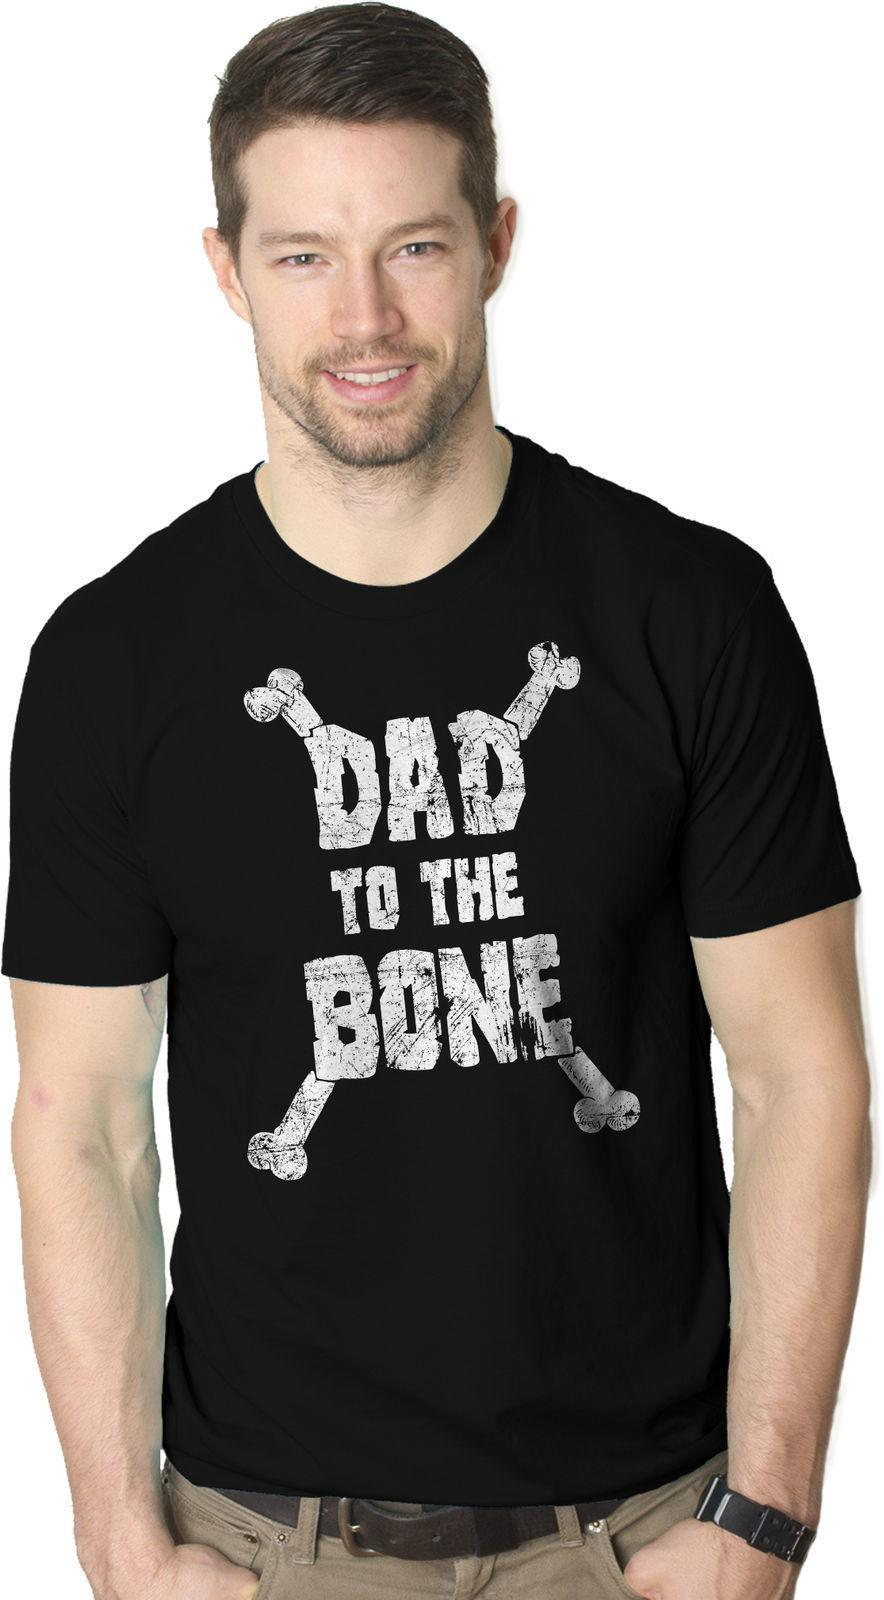 2262e8c9 Mens Dad To The Bone Funny Music Parody Fathers Day T Shirt Cool Gift Idea  Tees Designs Find A Shirt From Jie028, $14.67| DHgate.Com